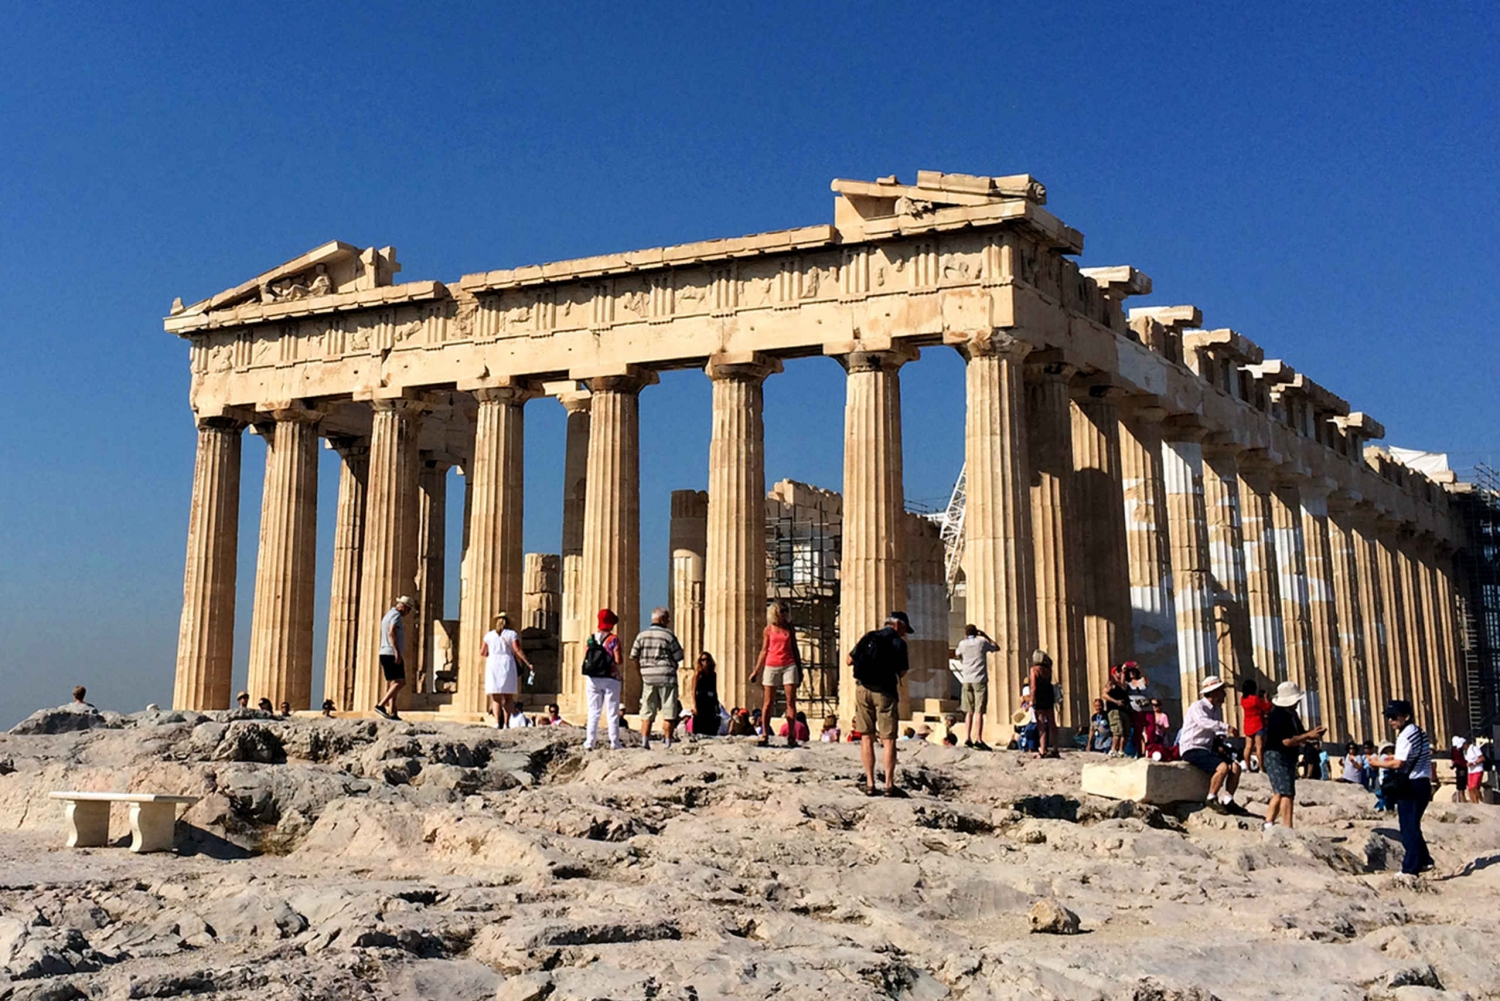 Acropolis Tour & Museum with Ticket Options